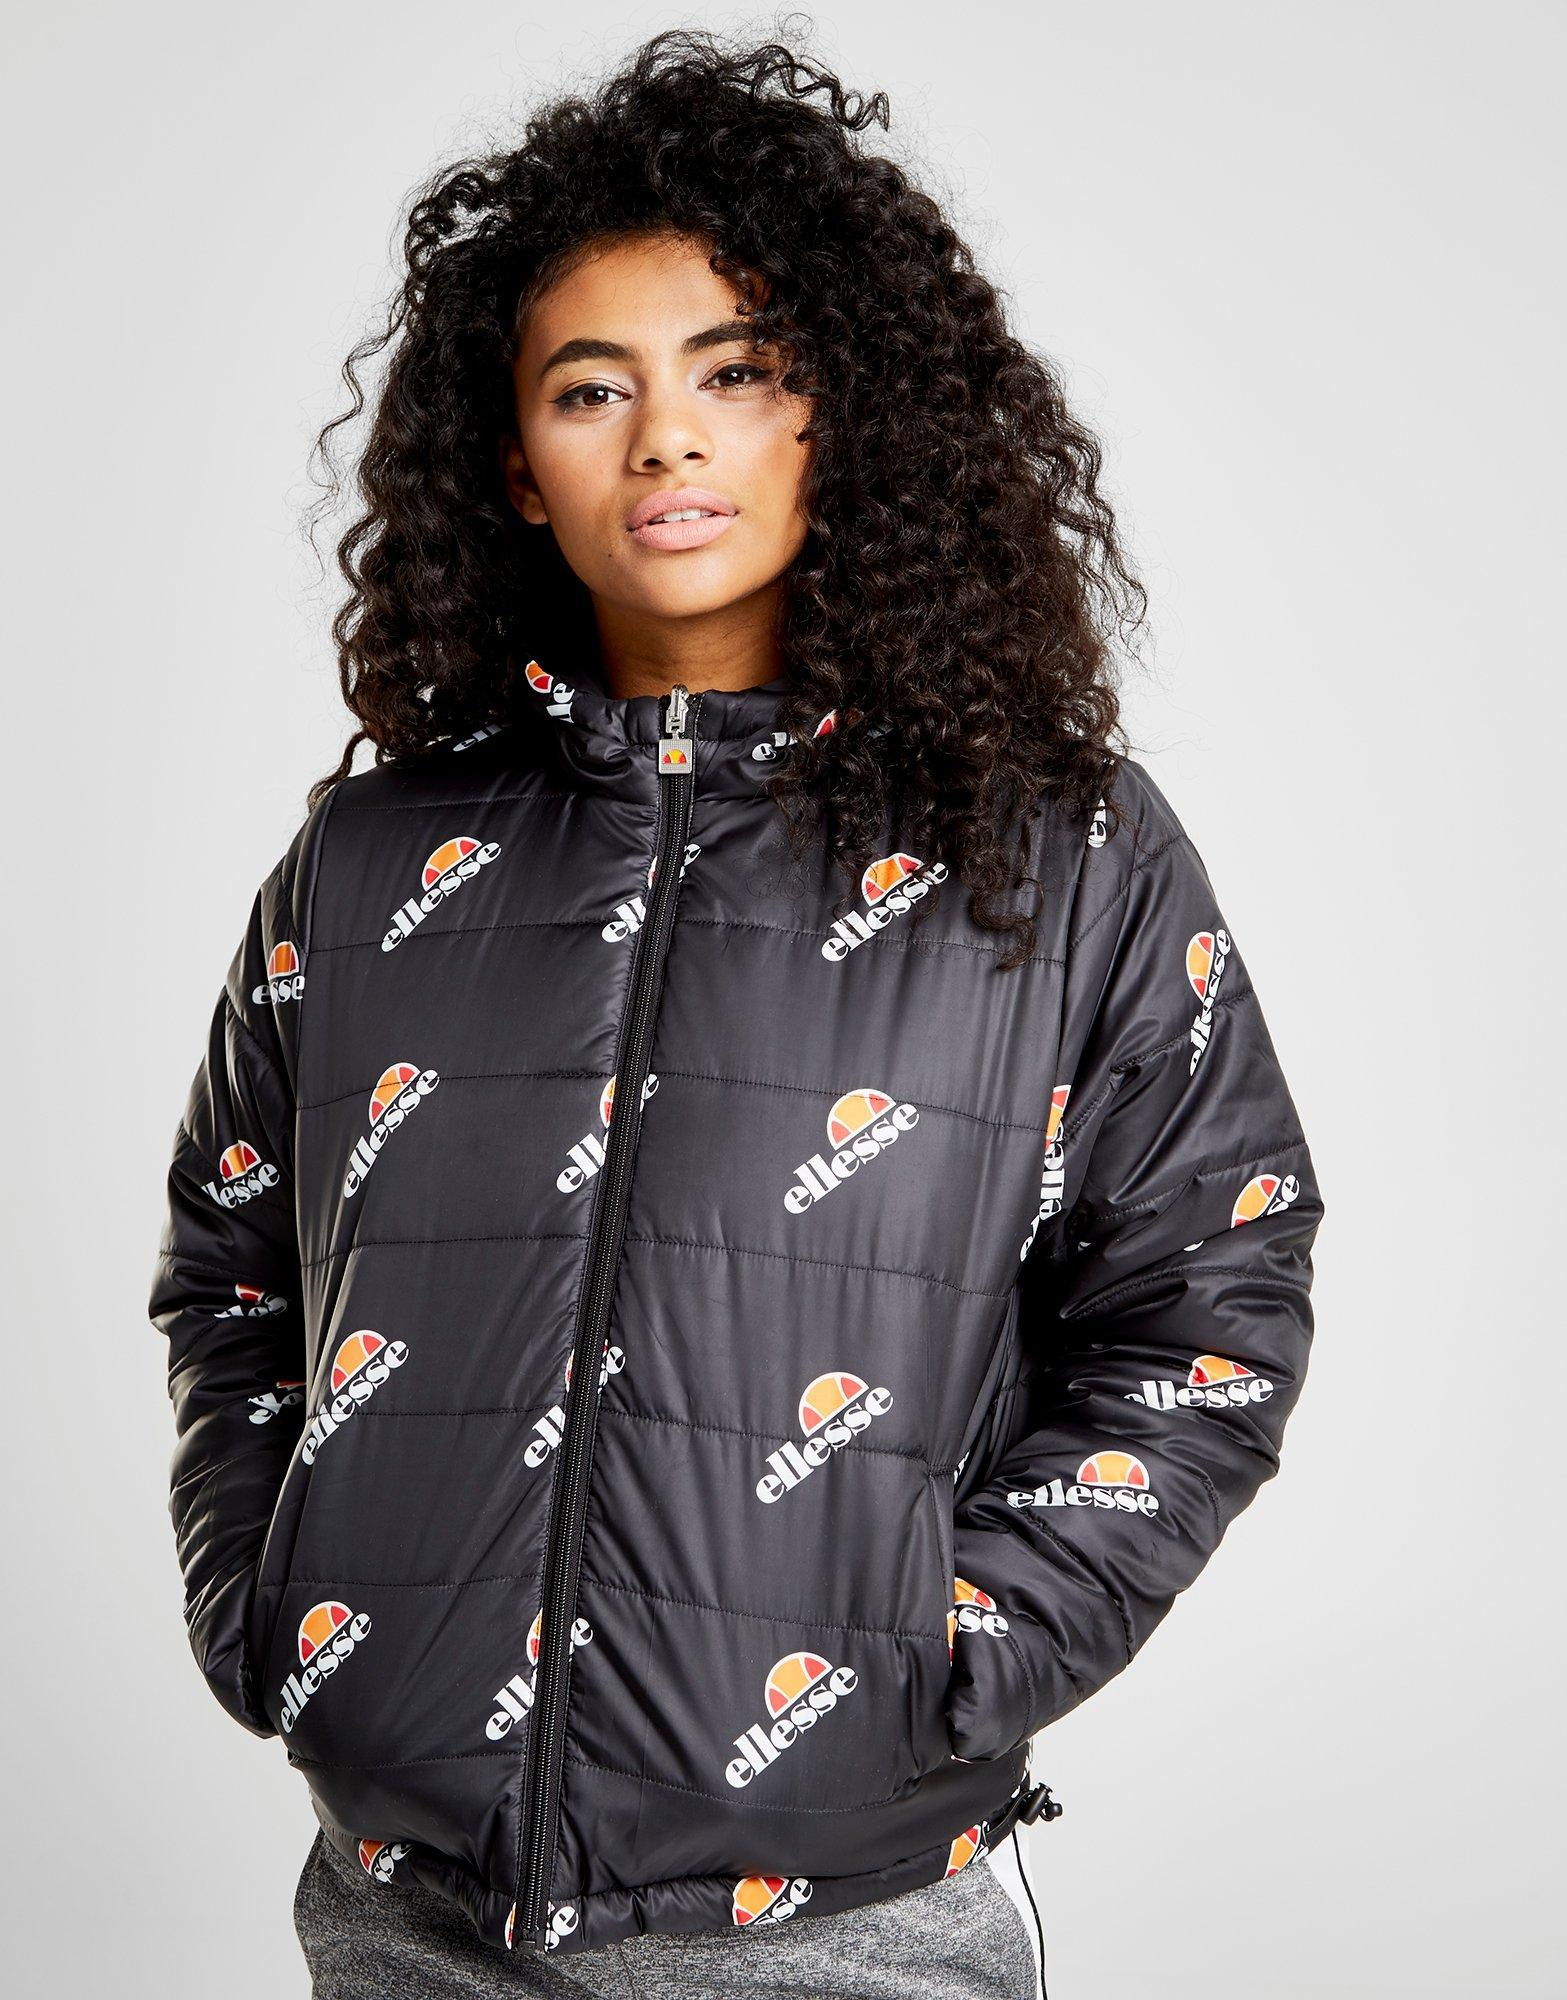 342e6bef8 Ellesse Reversible Padded Jacket in Black - Lyst